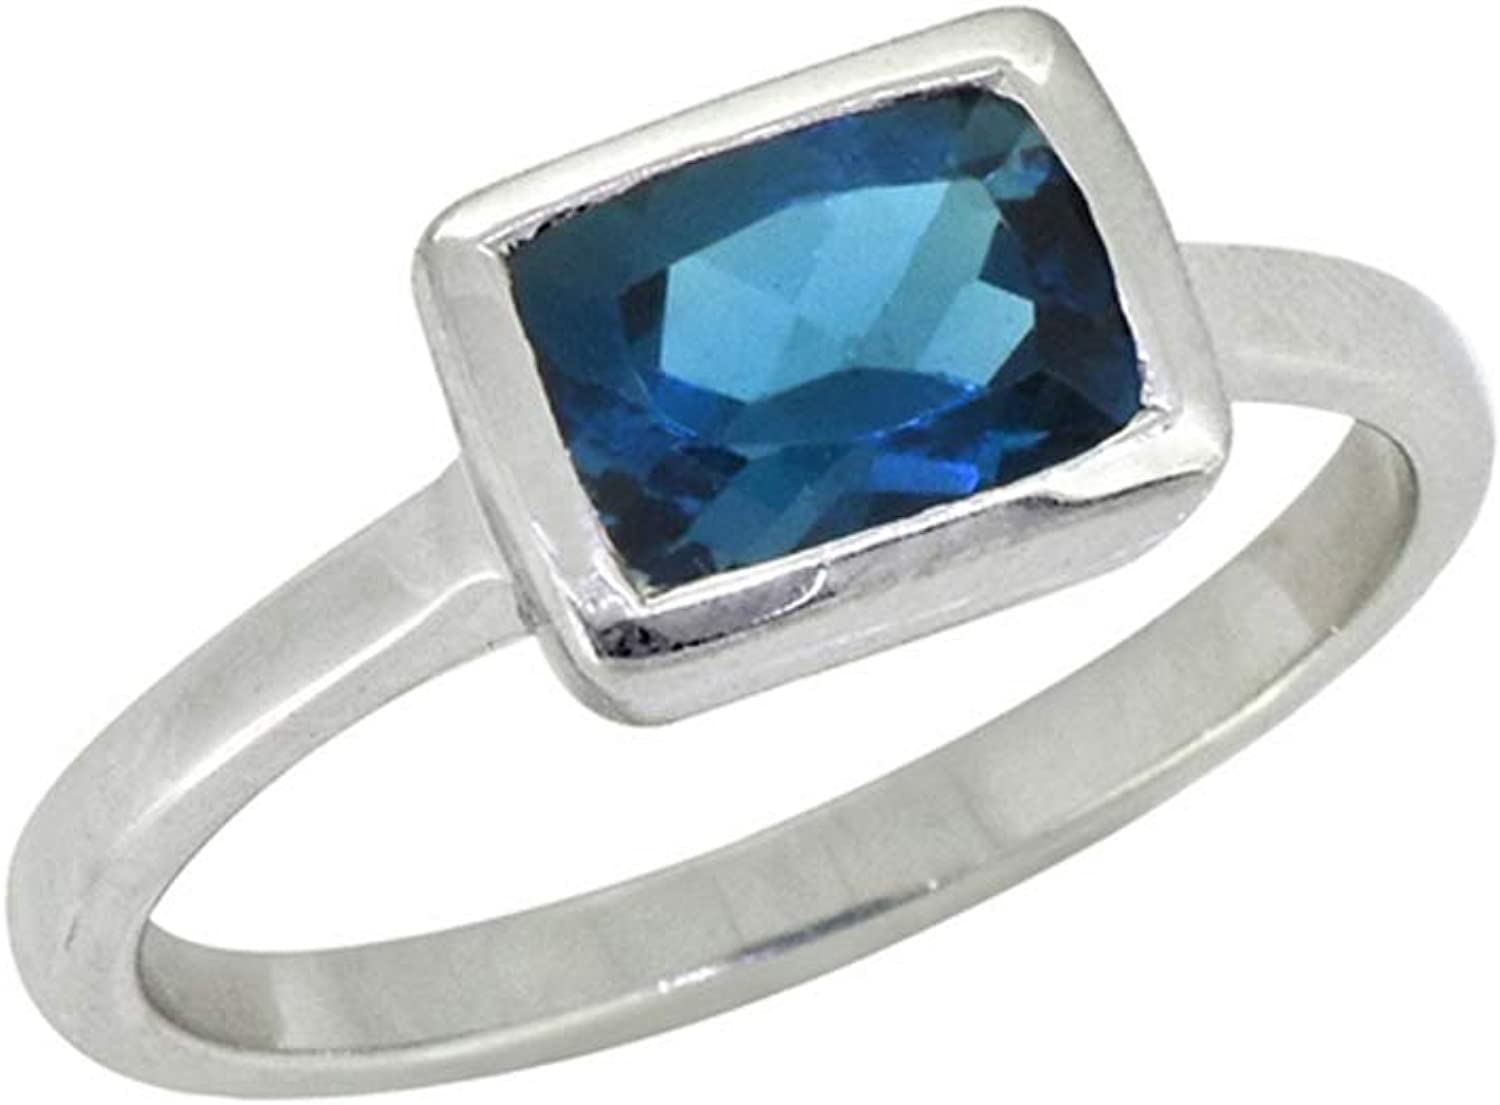 YoTreasure Al sold out. Manufacturer OFFicial shop 1.74 ct London Blue Topaz Solid Ring Sterling Silver